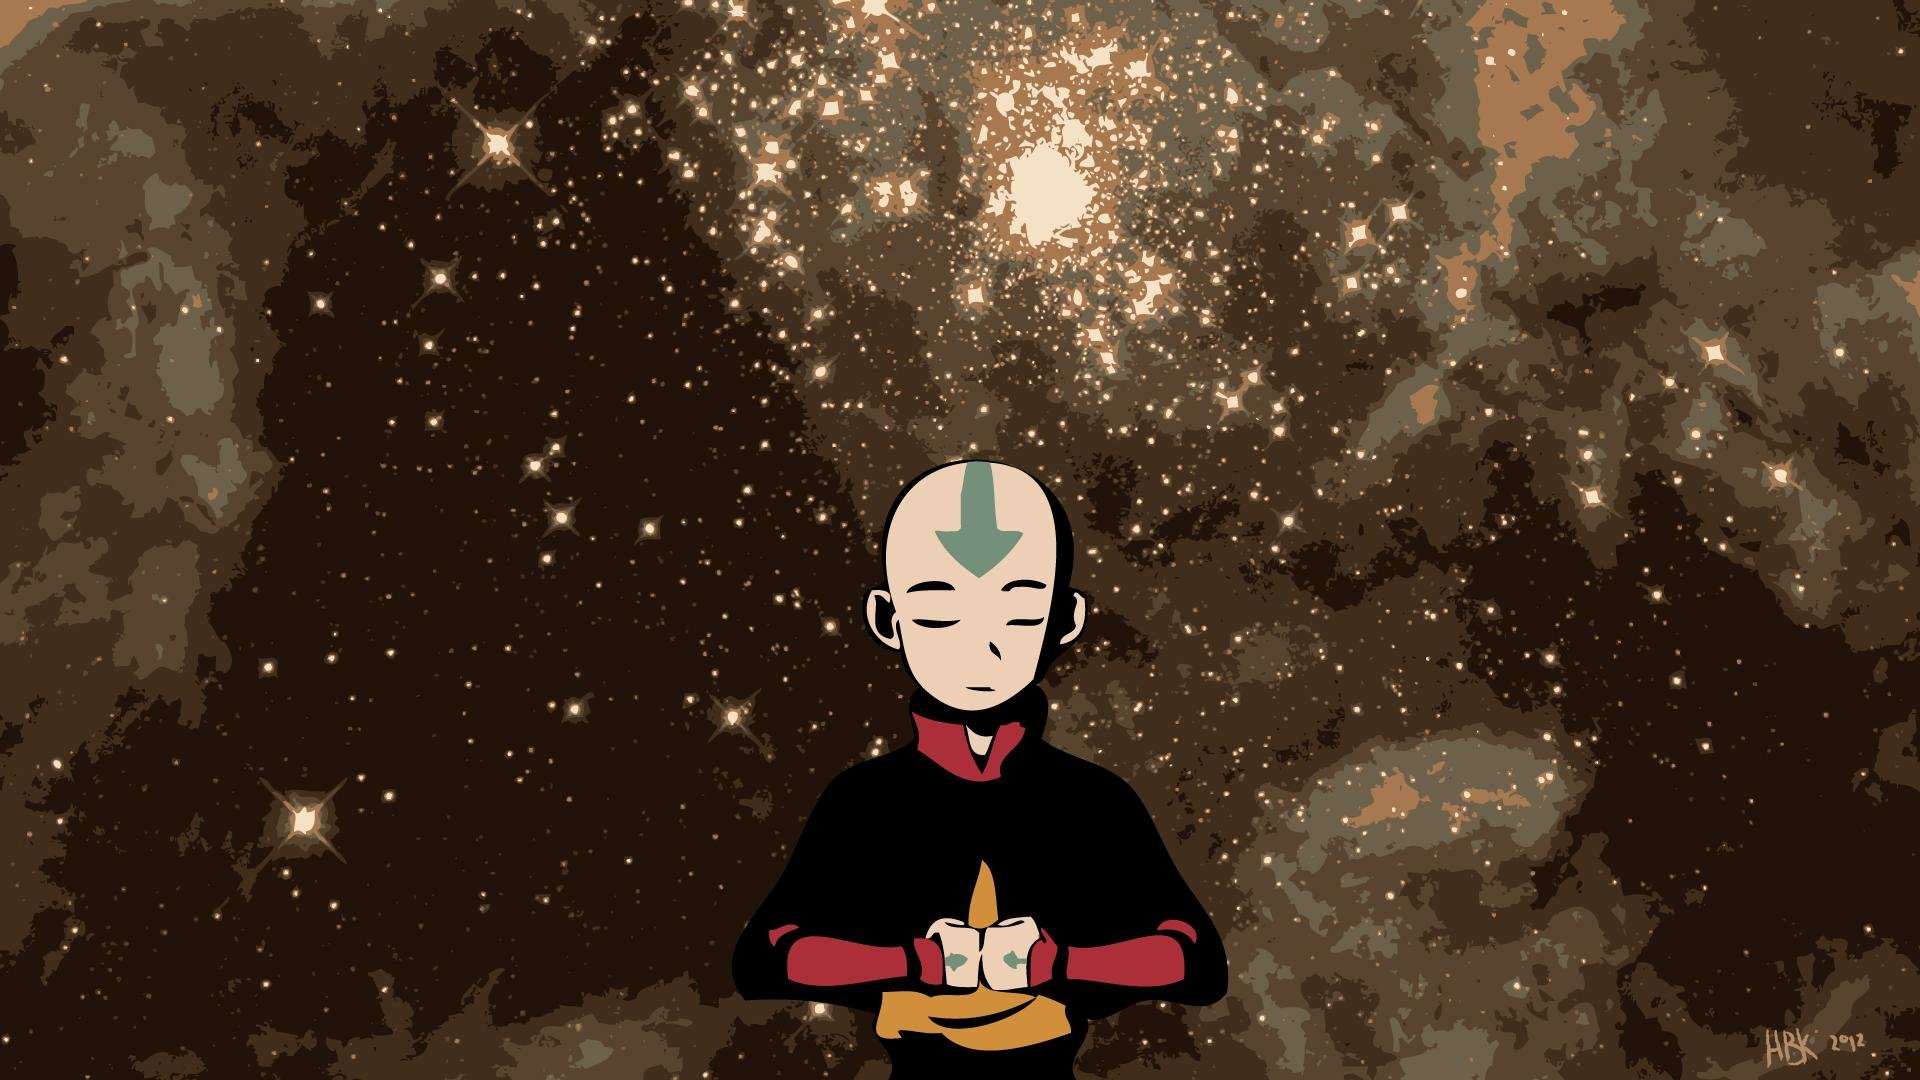 Download Full Hd 1080p Avatar The Last Airbender Pc Wallpaper Id